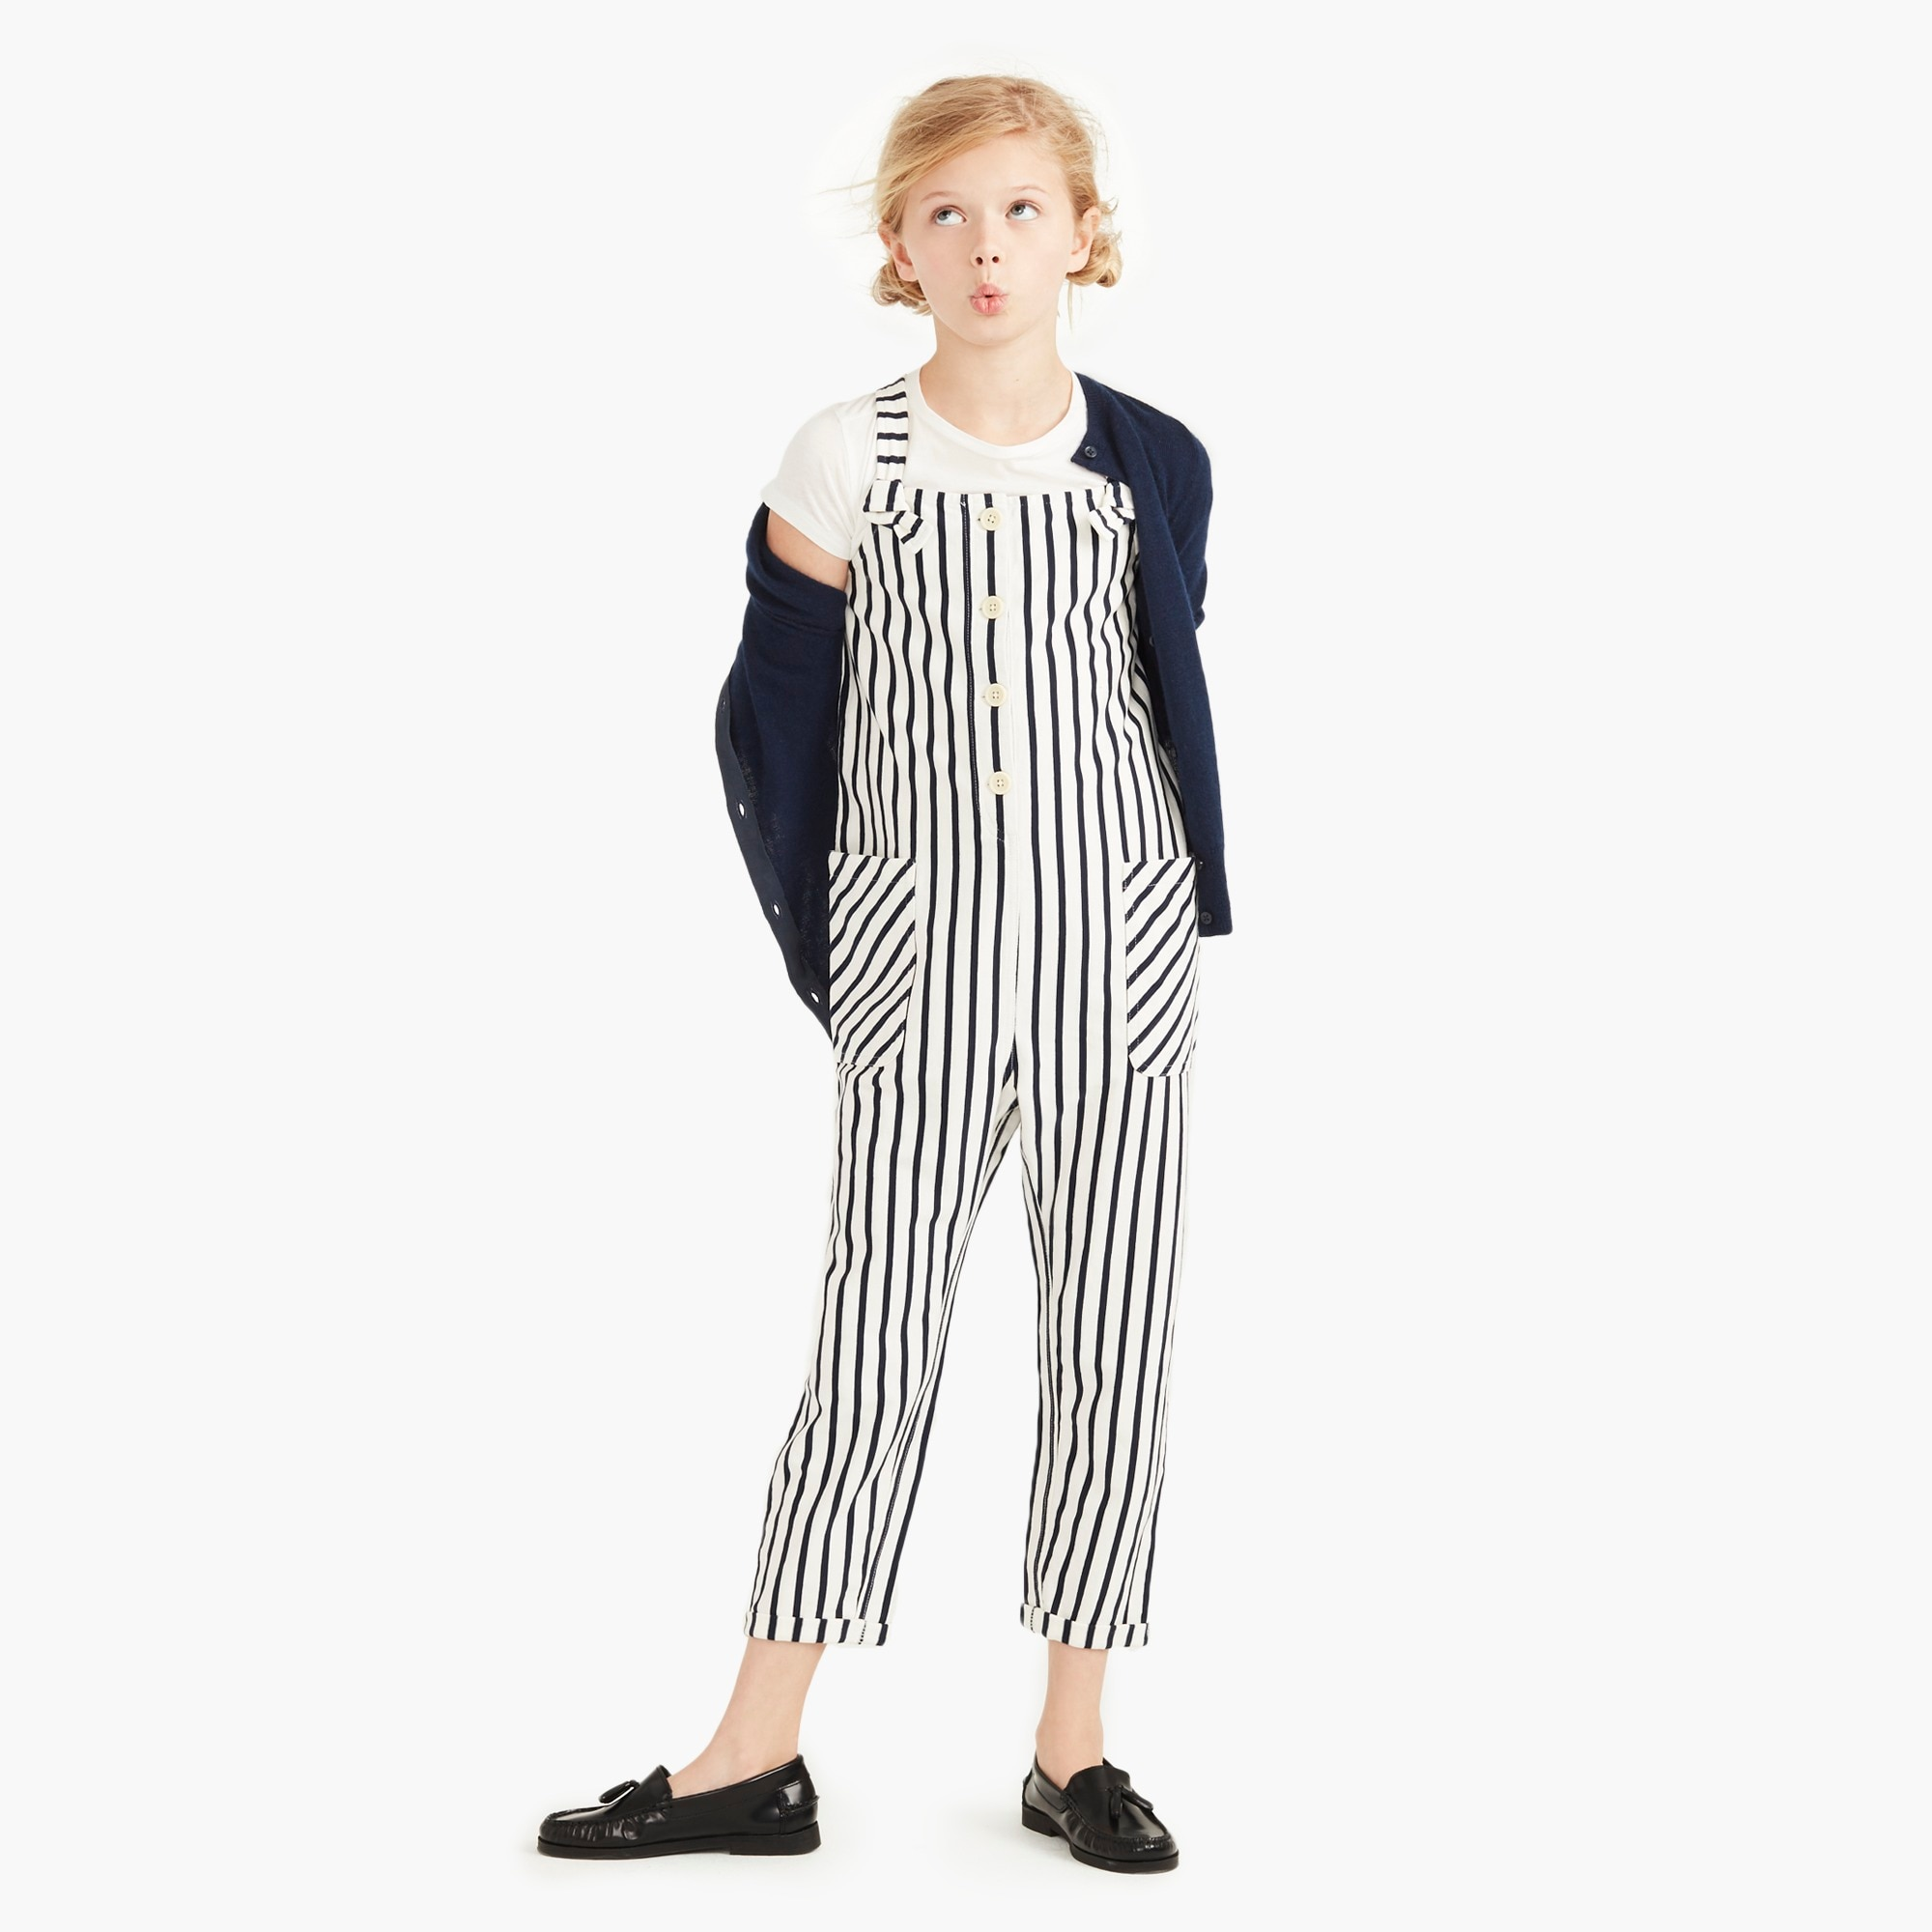 Boys' crewcuts X Childrenchic® tassel-topped loafers